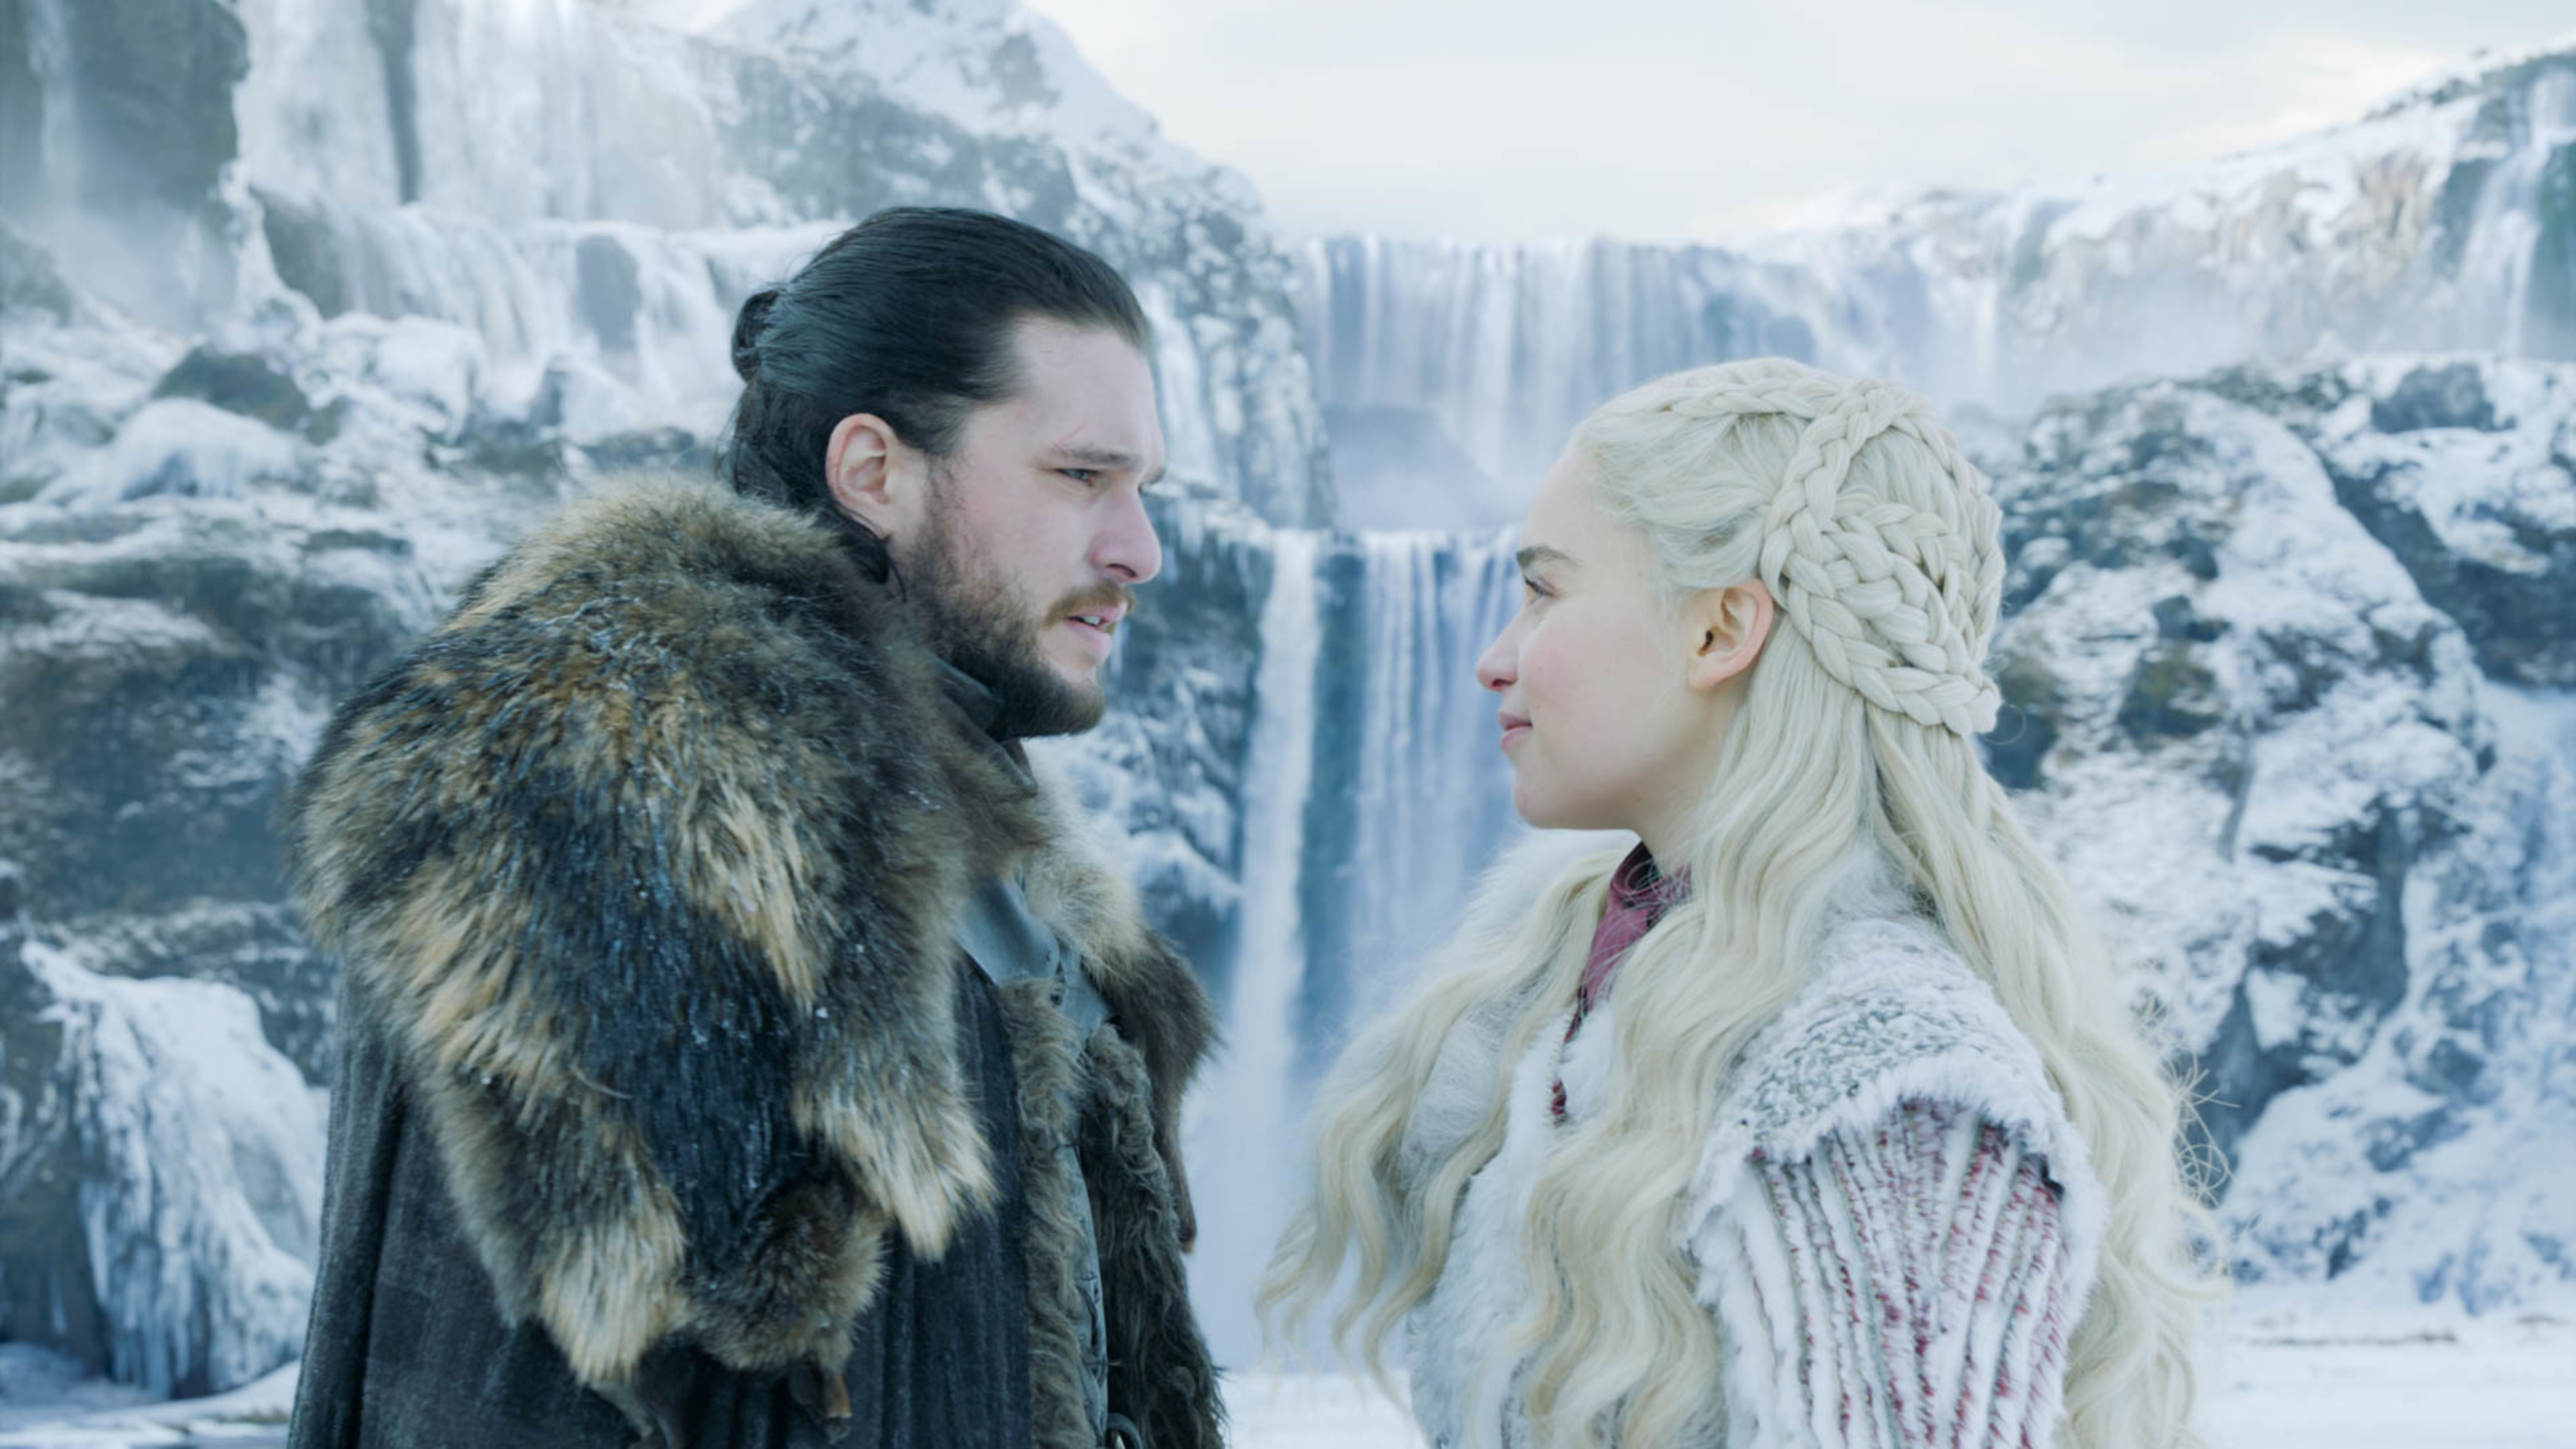 'Game of Thrones' Betting Odds May Help Determine Who Sits on the Iron Throne